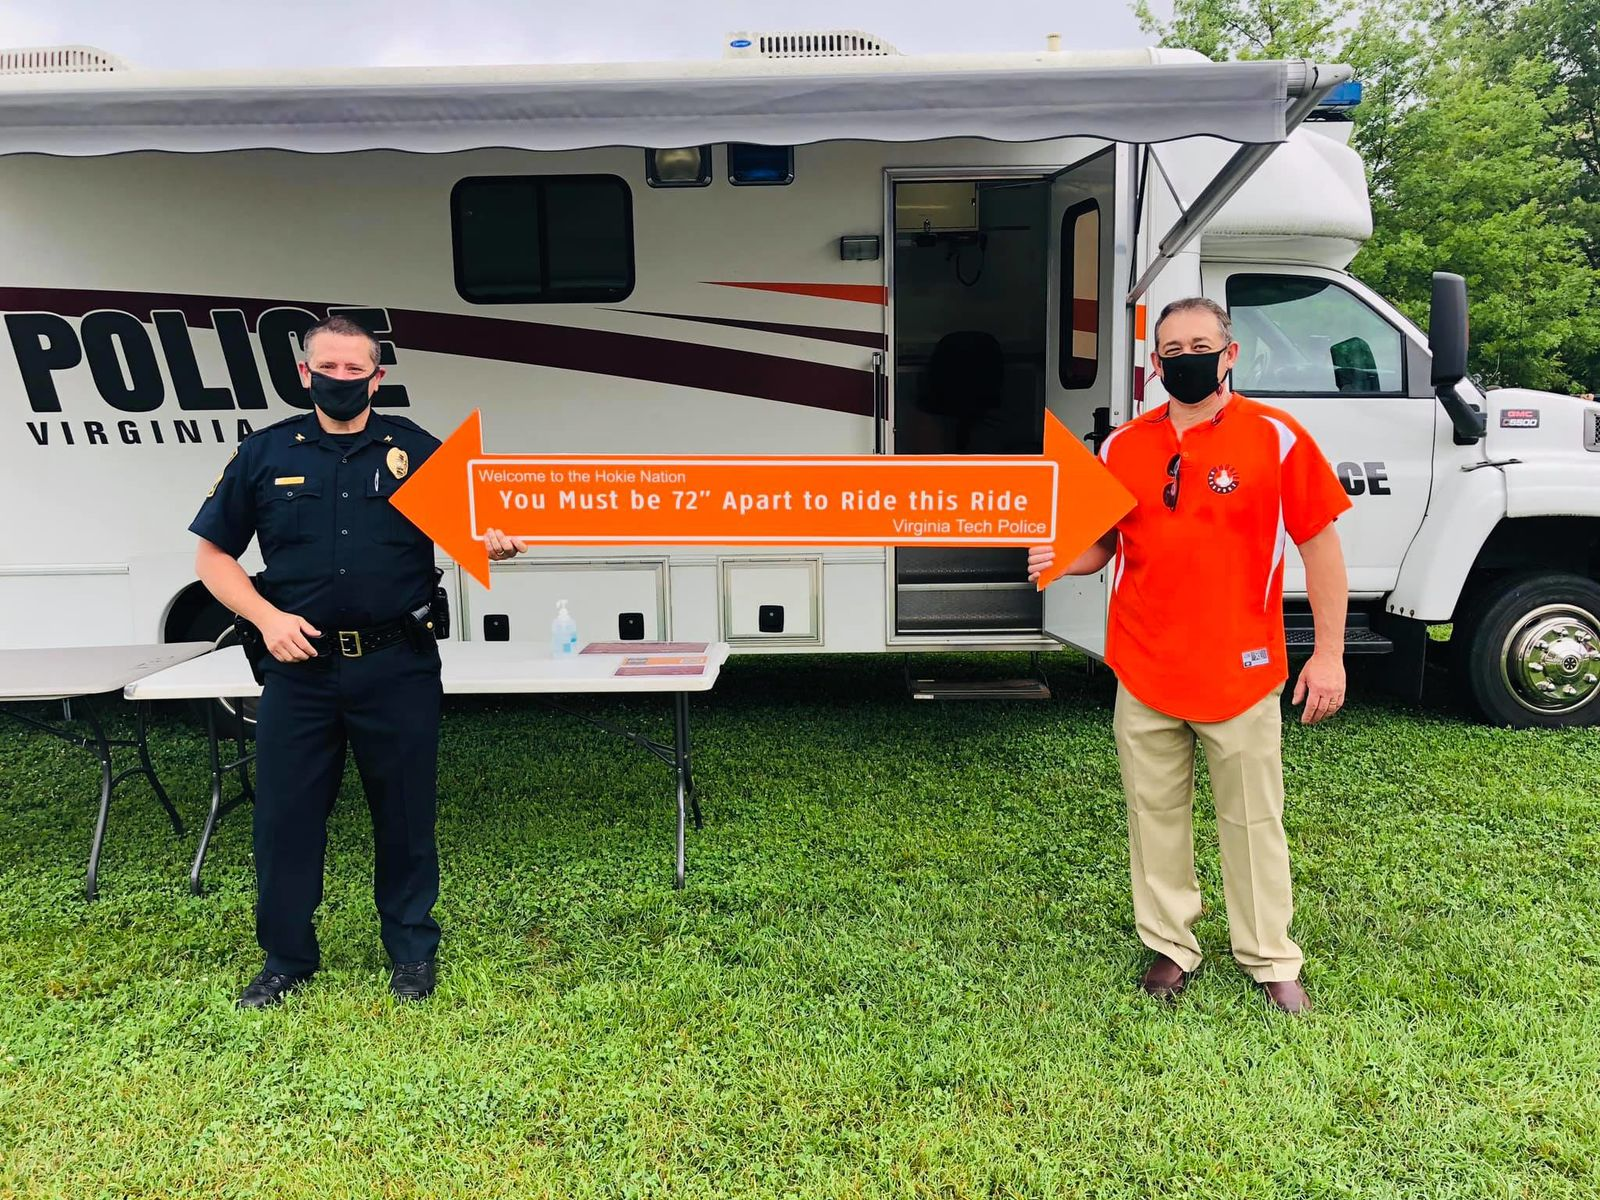 800 students were welcomed to Virginia Tech on Friday, August 14. Campus Police helped enforce social distancing so that all students and families could unload safely. (Virginia Tech Police)<p></p>